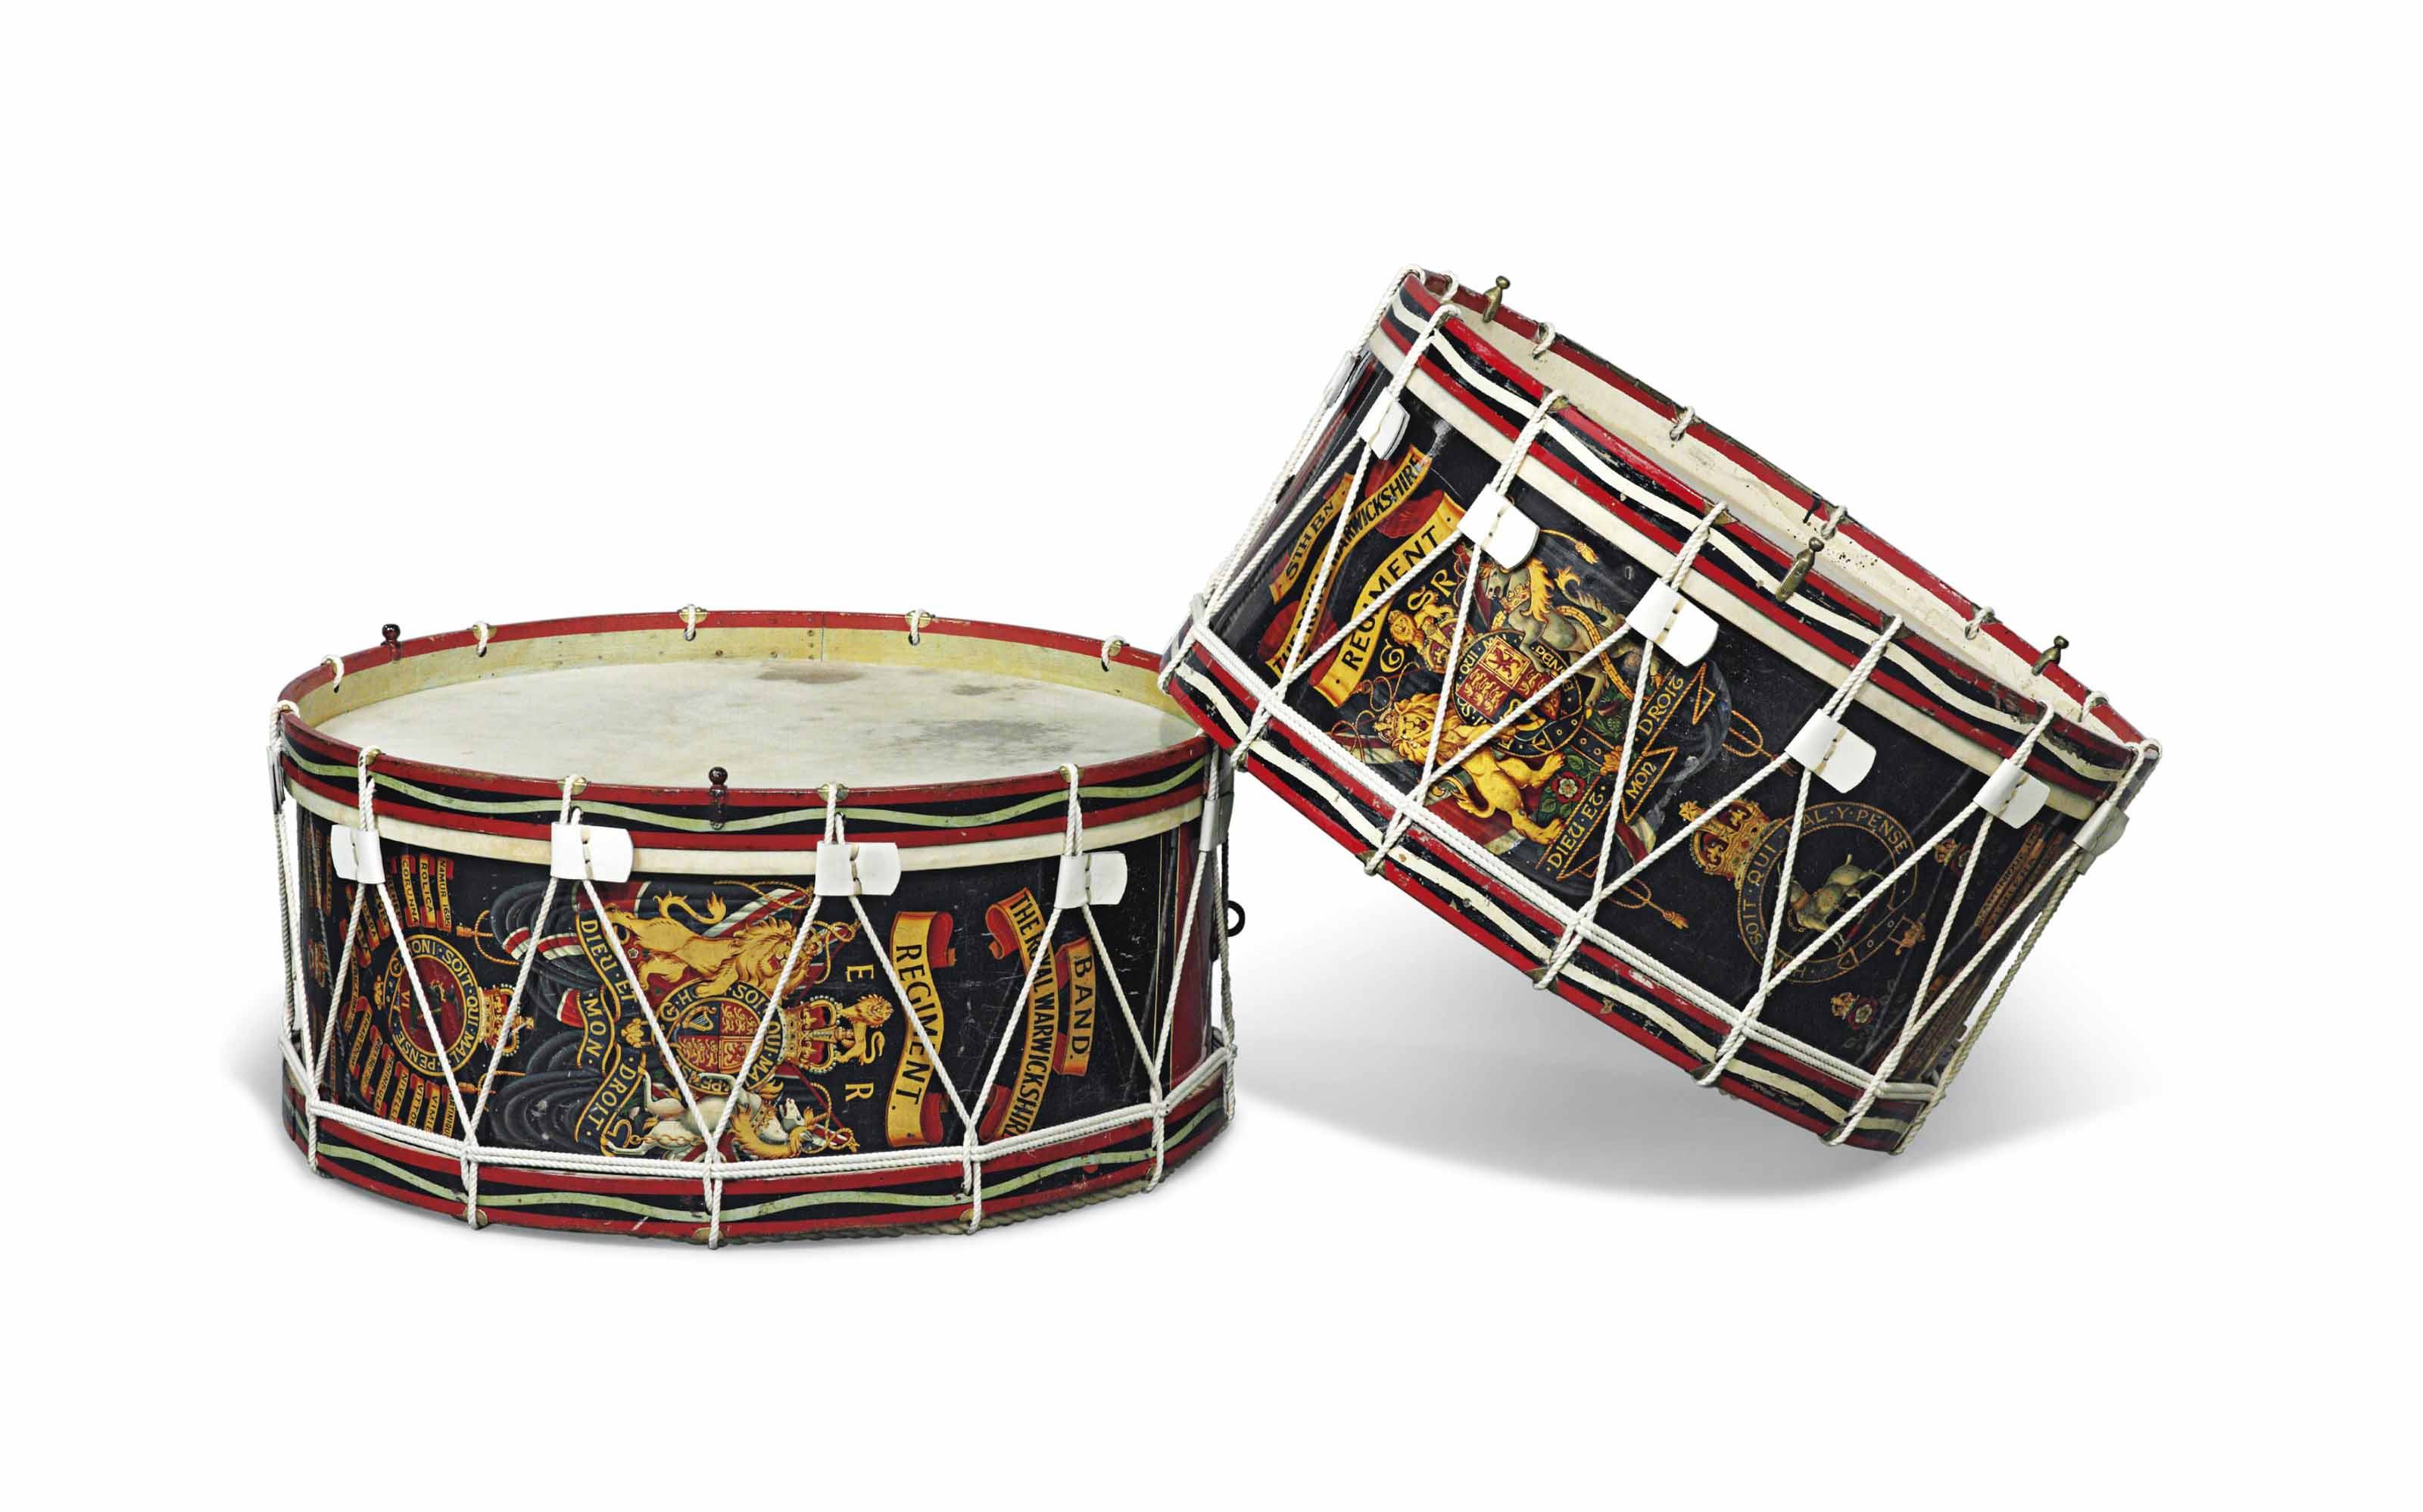 TWO MILITARY BAND DRUMS OF 'THE ROYAL WARWICKSHIRE REGIMENT'